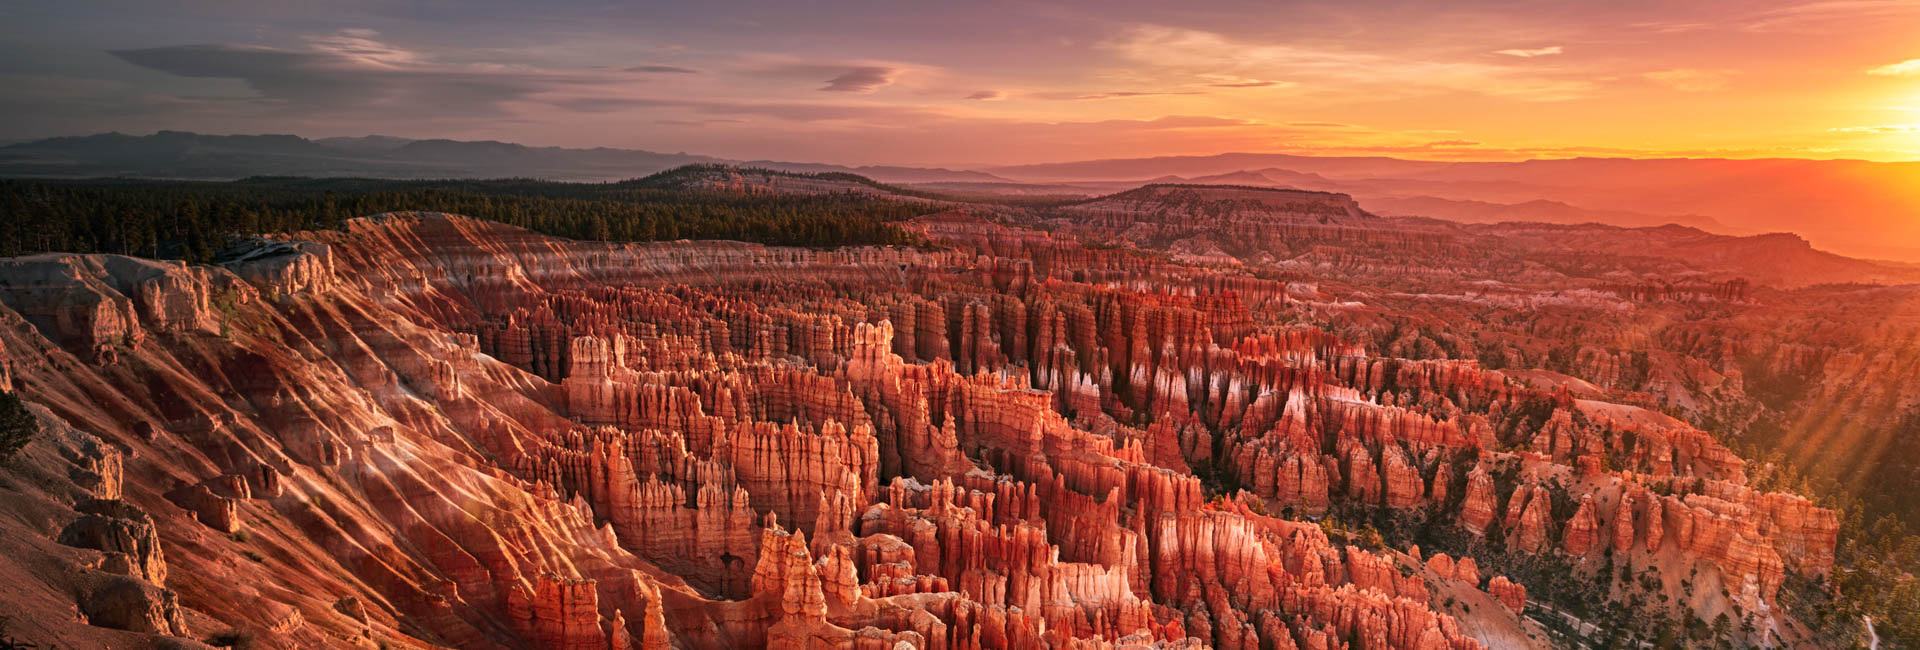 Bryce Canyon at dawn.